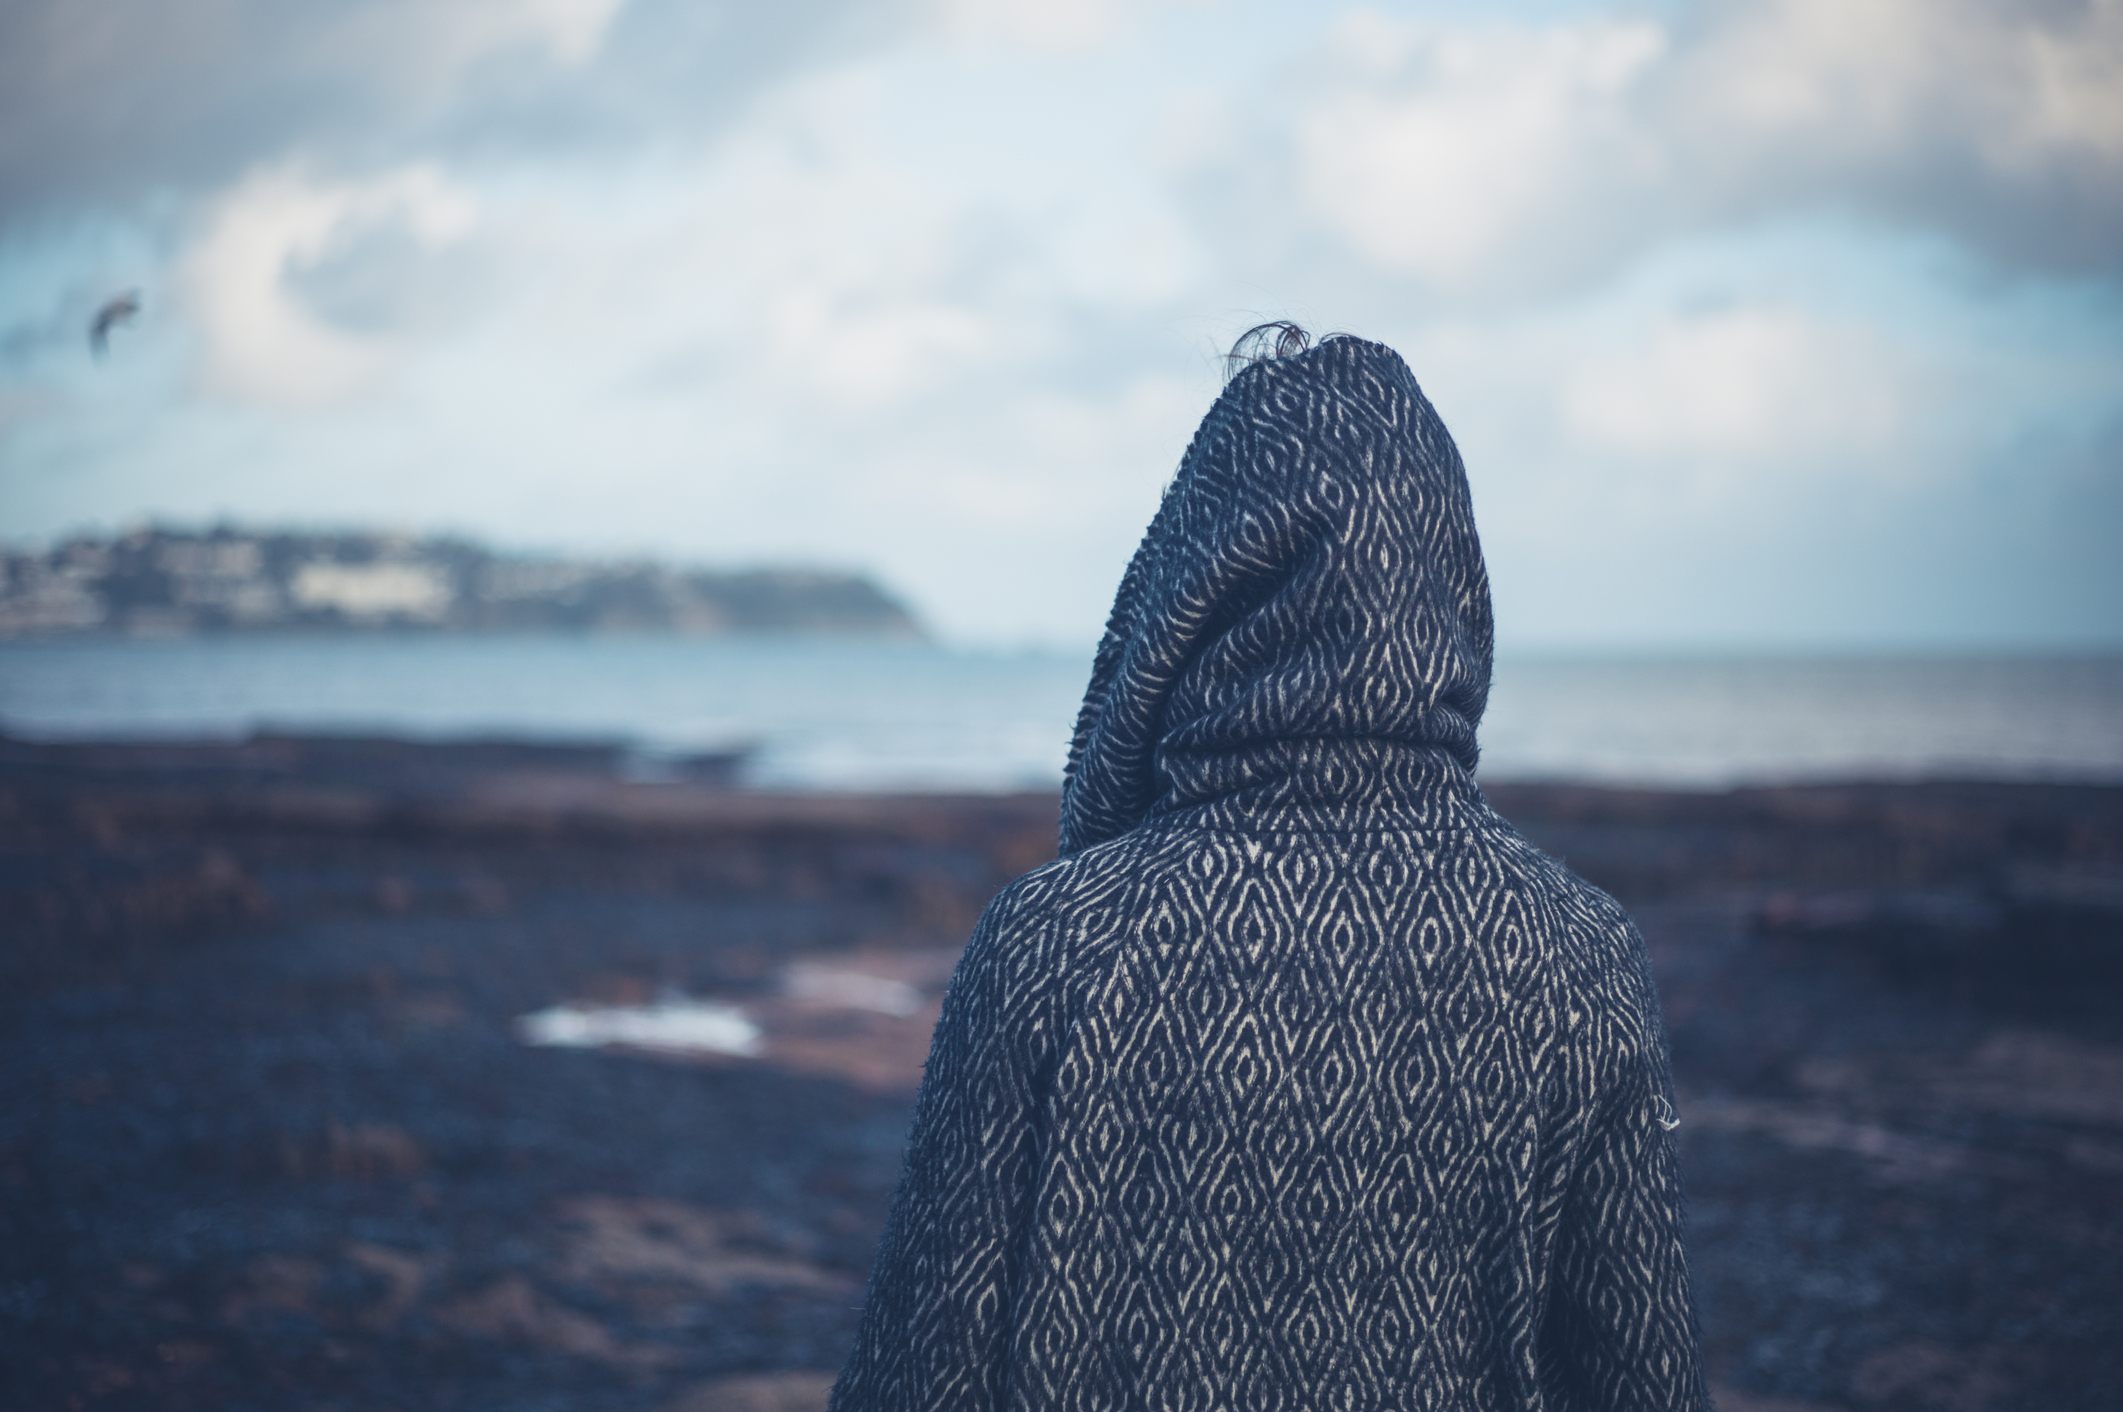 California has one of the highest rates of depression in the U.S. -